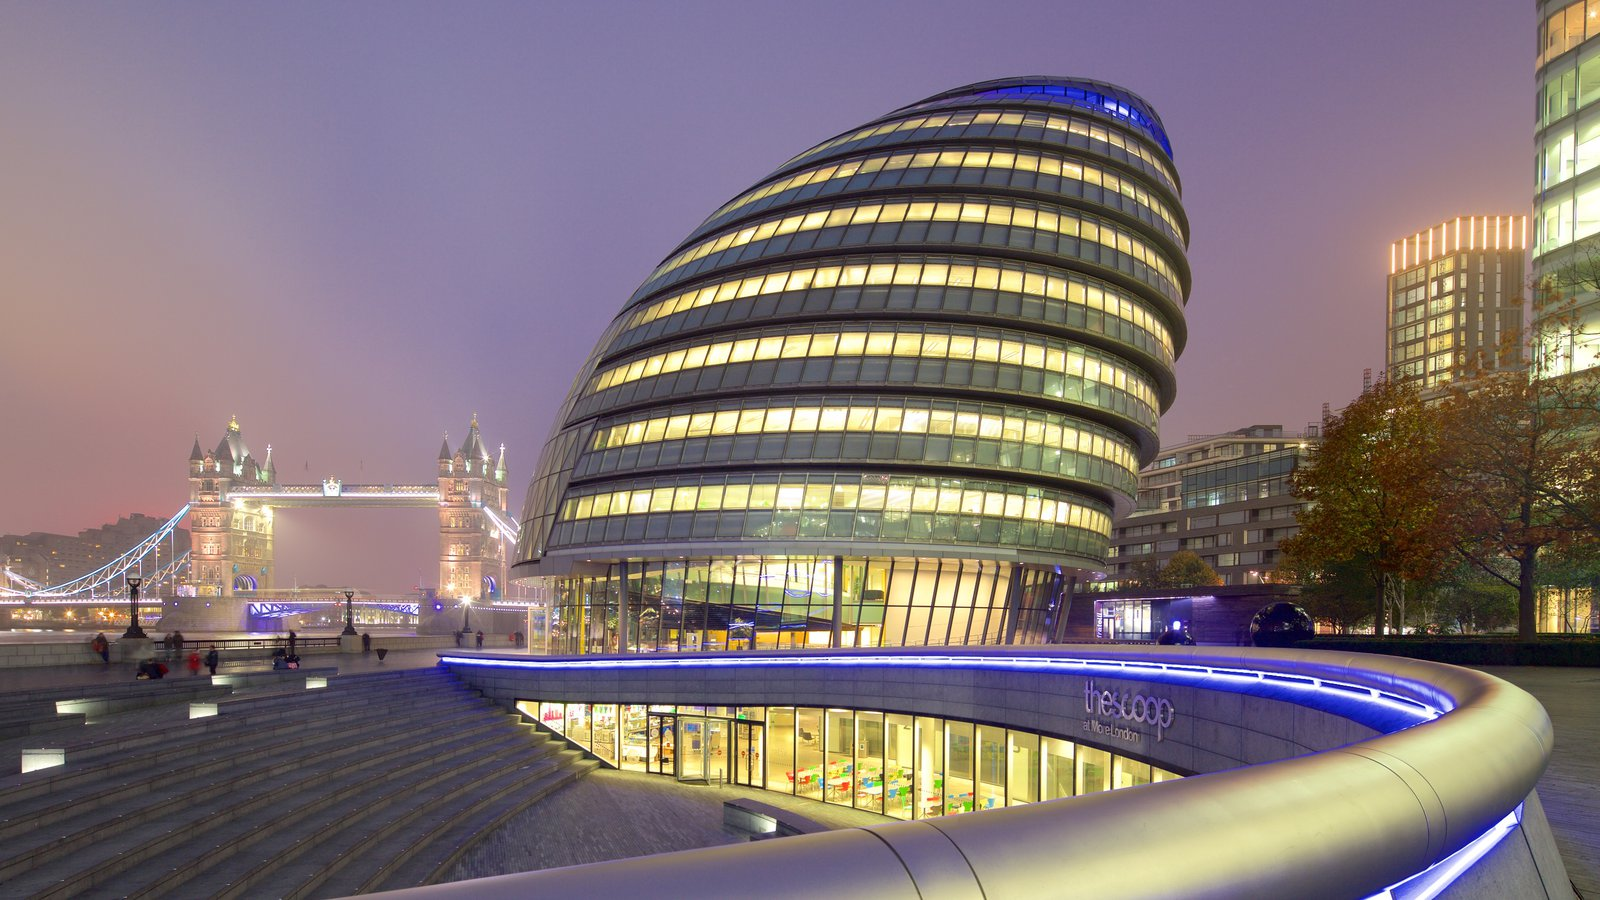 London City Hall showing night scenes, heritage architecture and modern architecture